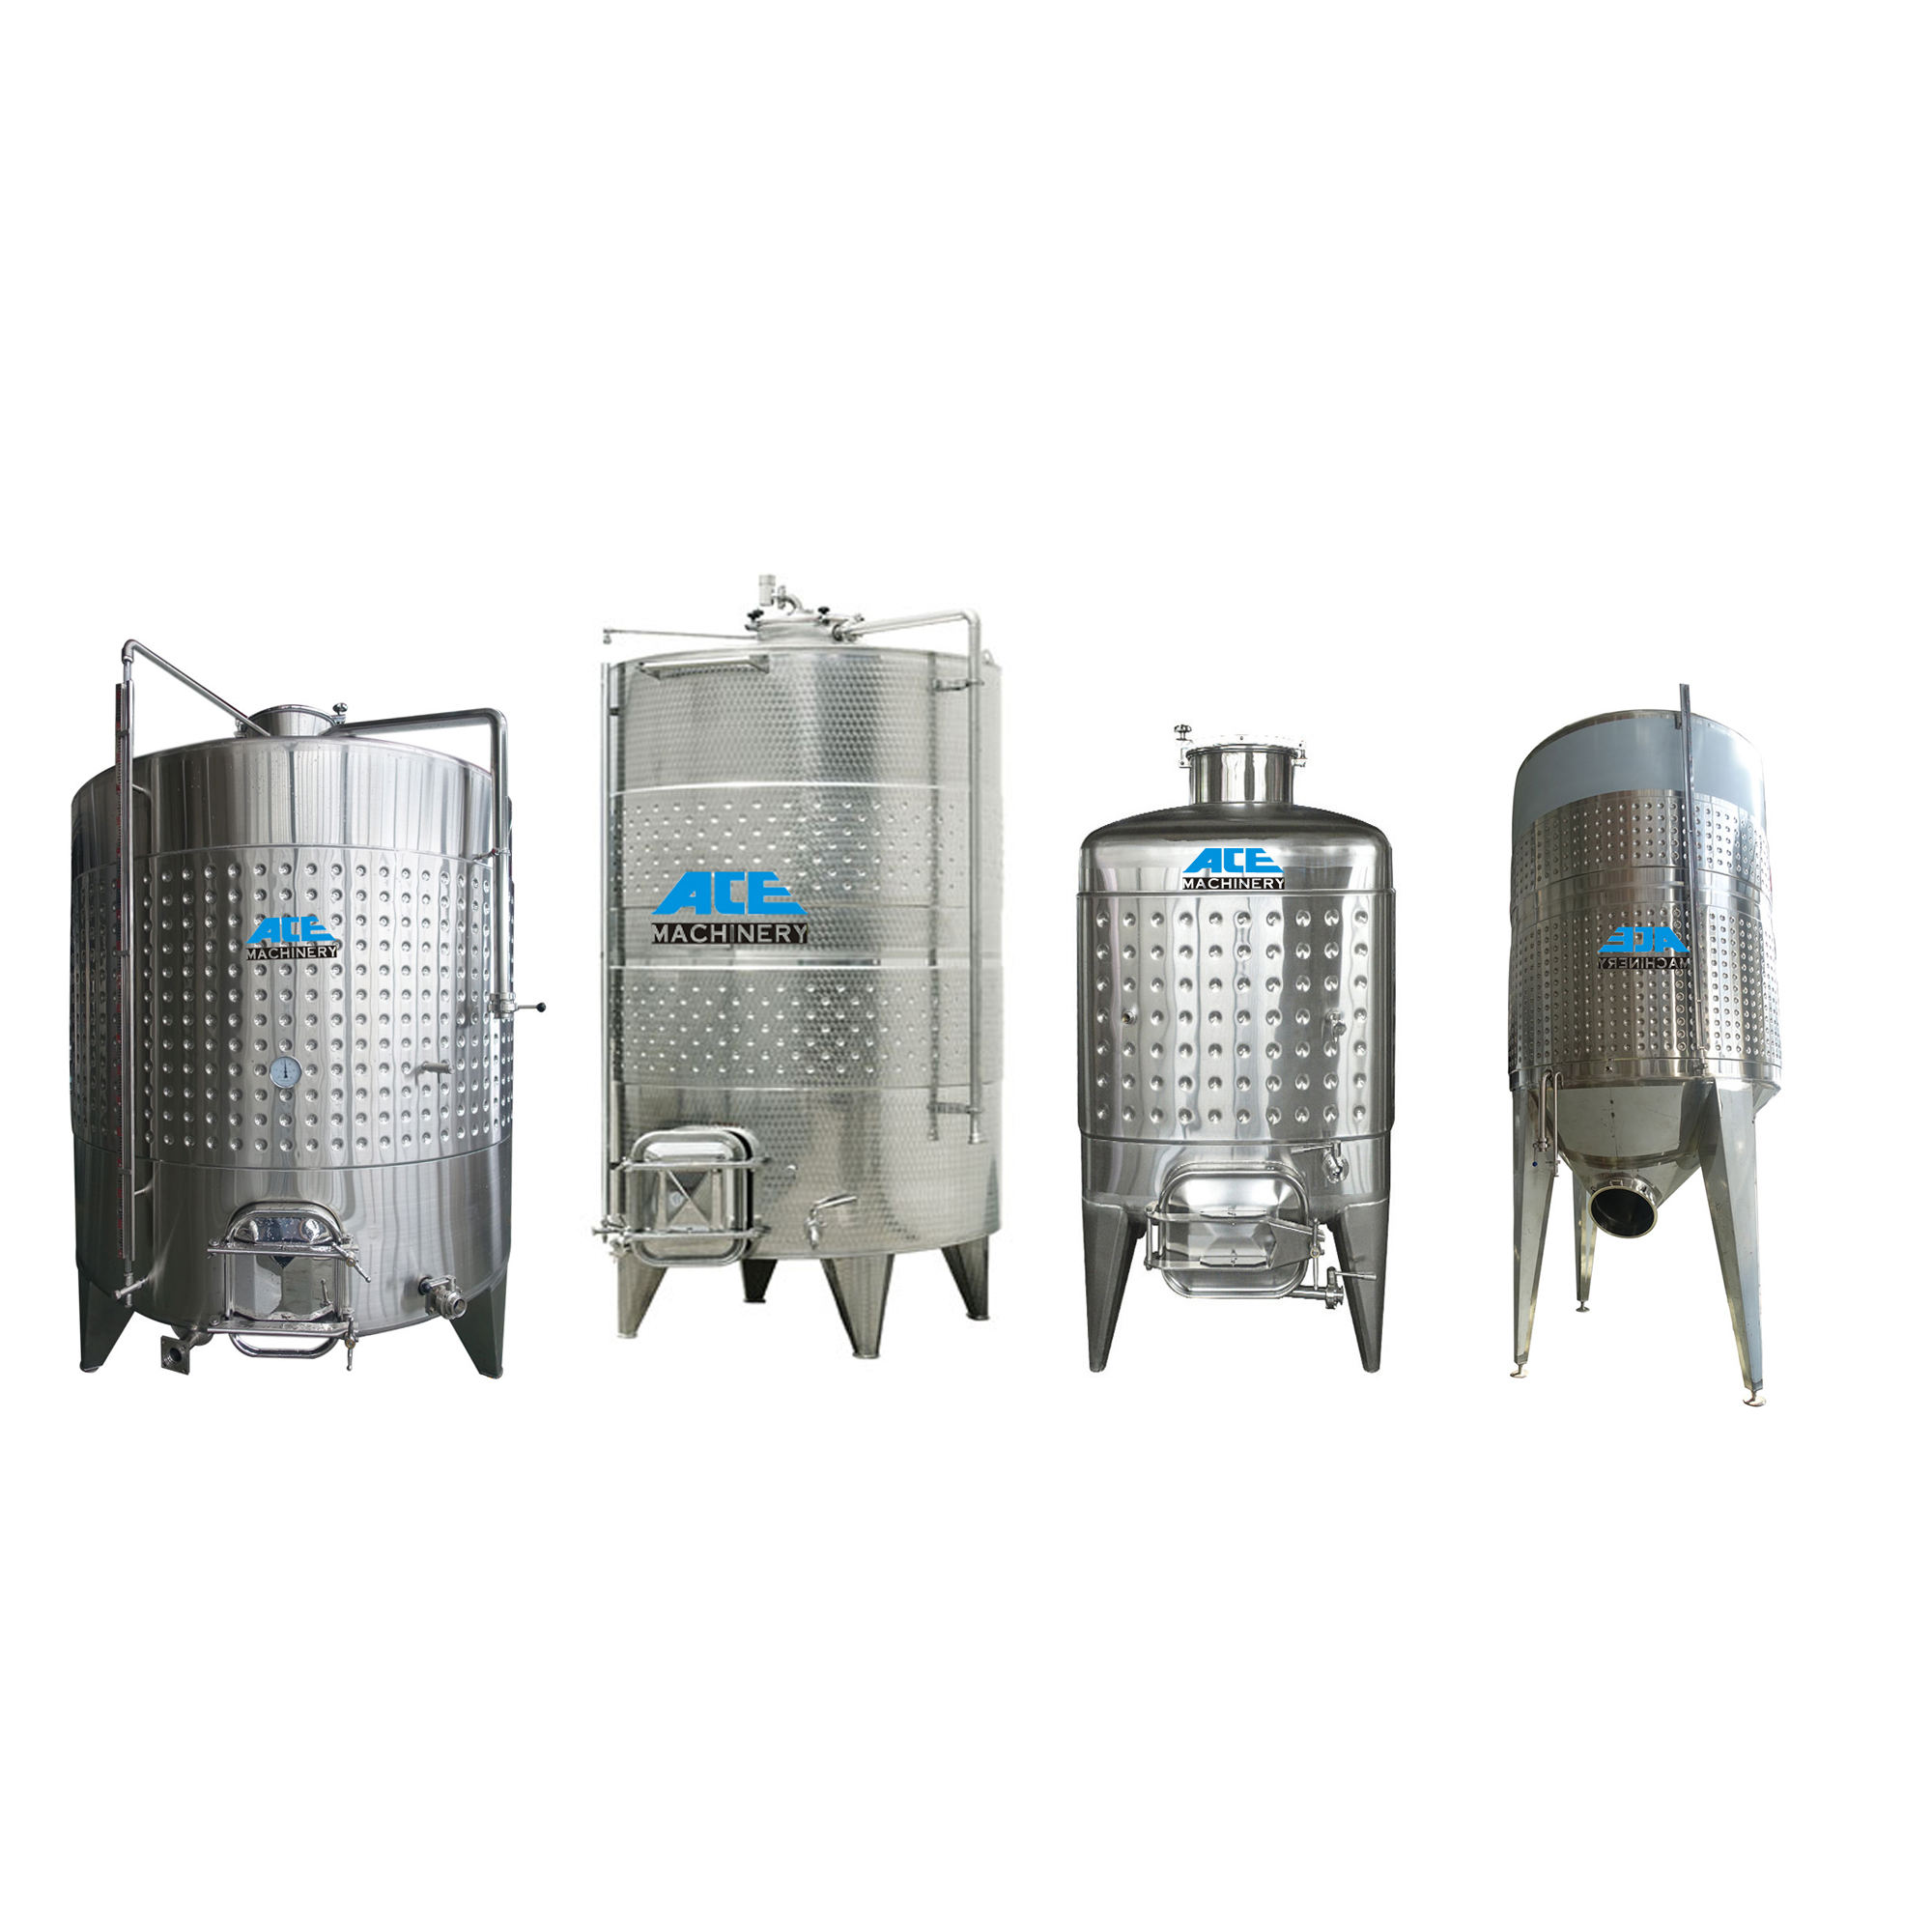 1000l 2000l 4000l 5000 Liters Stainless Steel Red Fruit Wine Fermentation Tank Equipment Wine Making Machine Wine Fermenter Tank